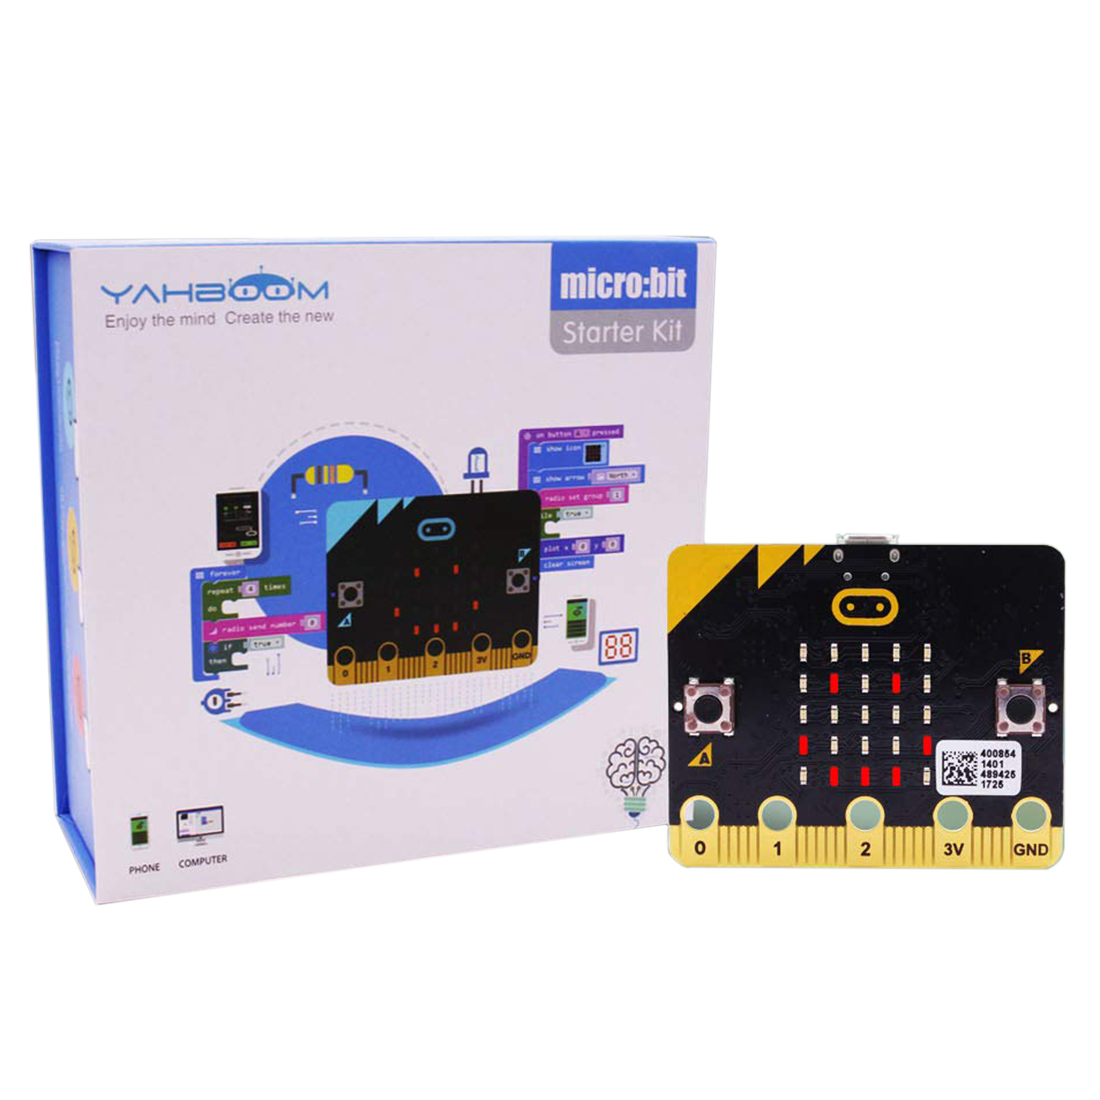 Micro:Bit Kit Starter Learning Kit Micro Bit Board Graphical Programmable STEM Toy For Kids Adults Boys With Guidance Manual